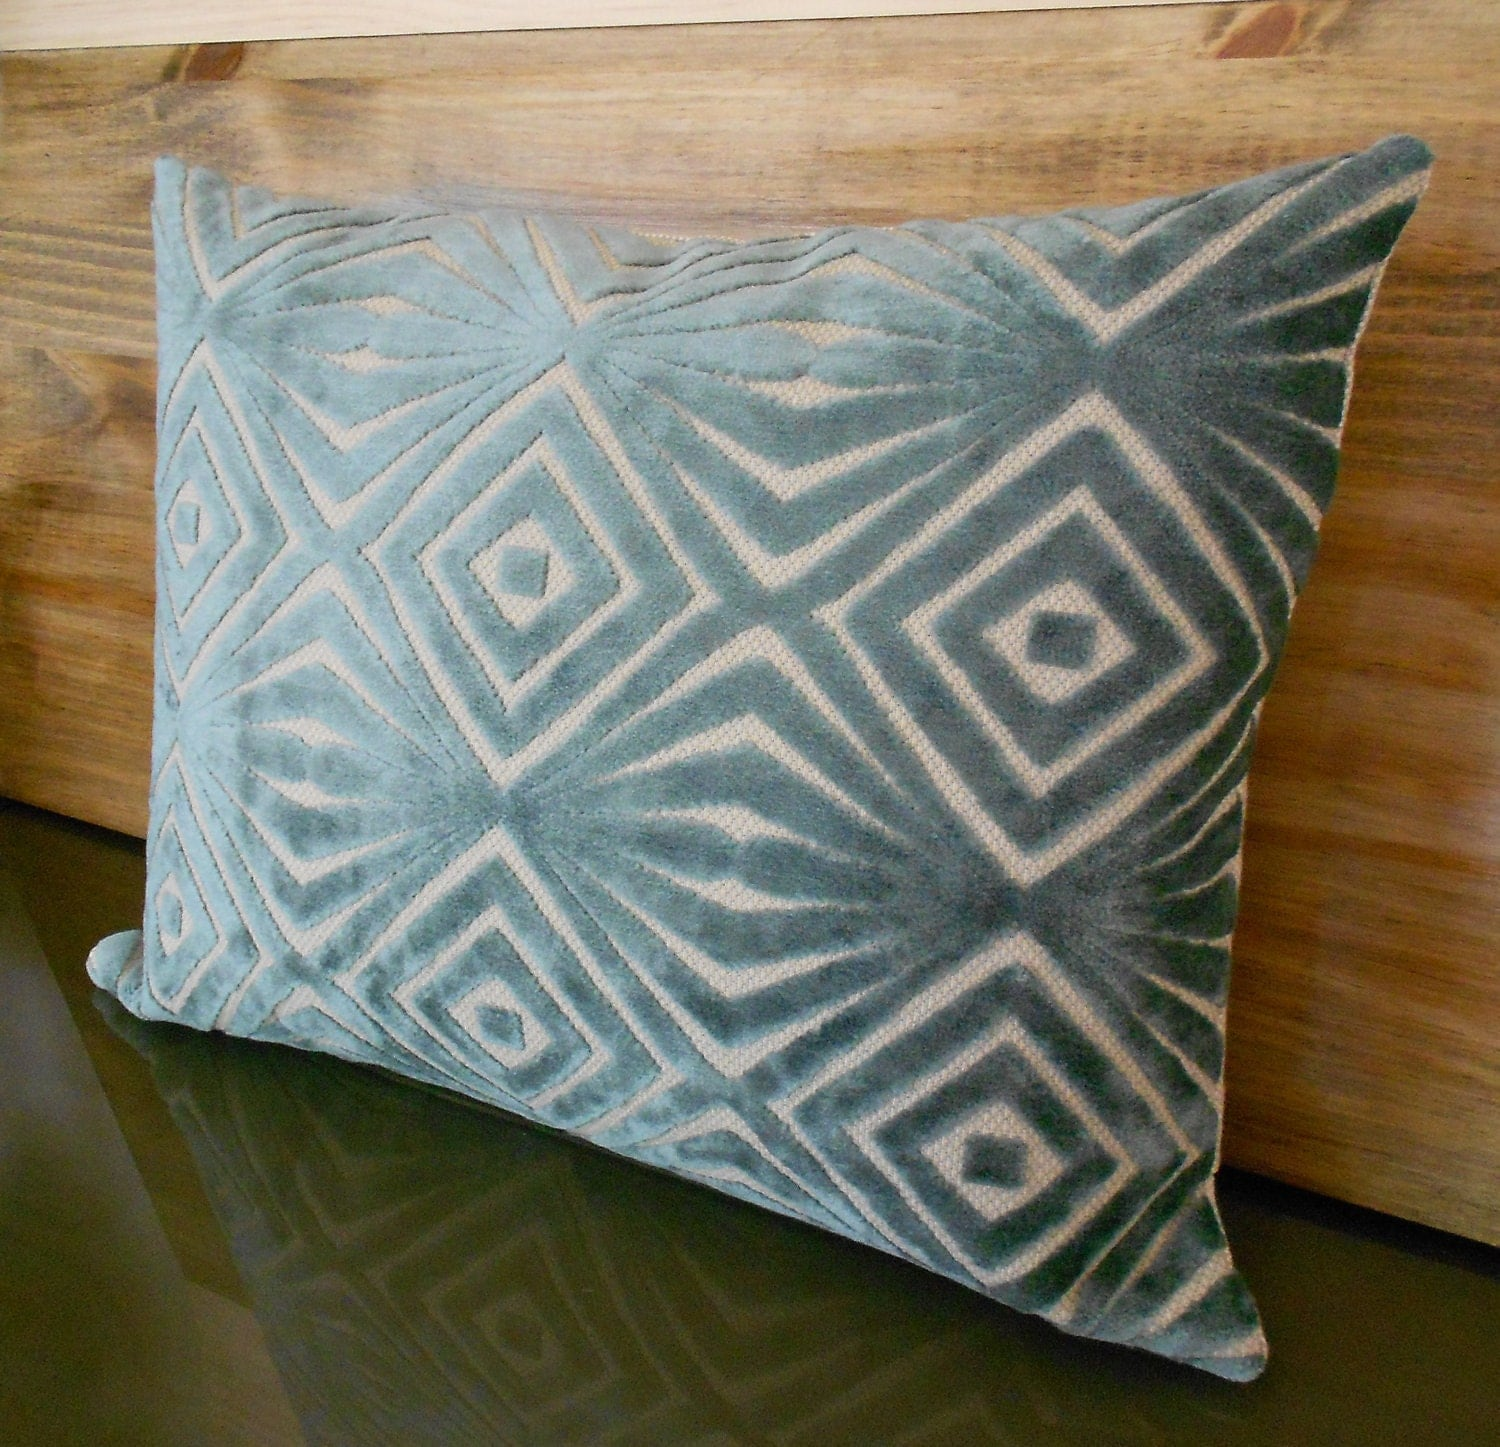 Teal Decorative Bed Pillows : Decorative pillow cover retro teal blue cut velvet